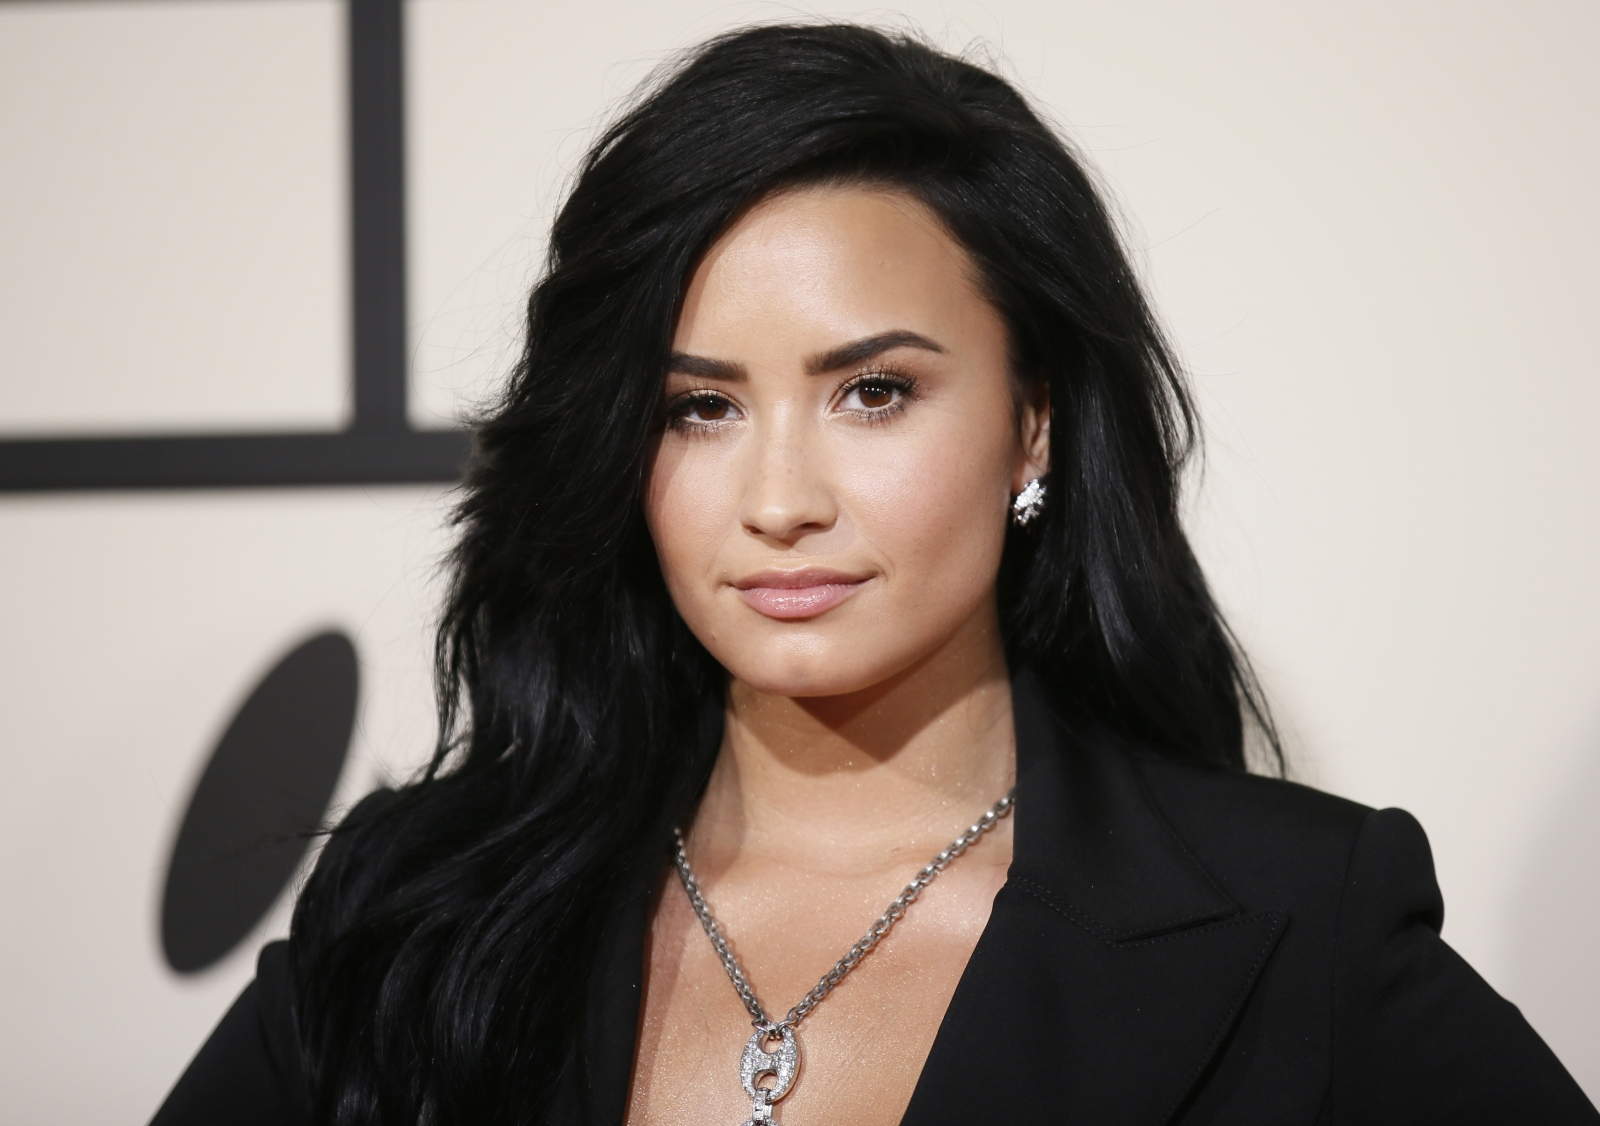 demi lovato sued by rock band sleigh bells for